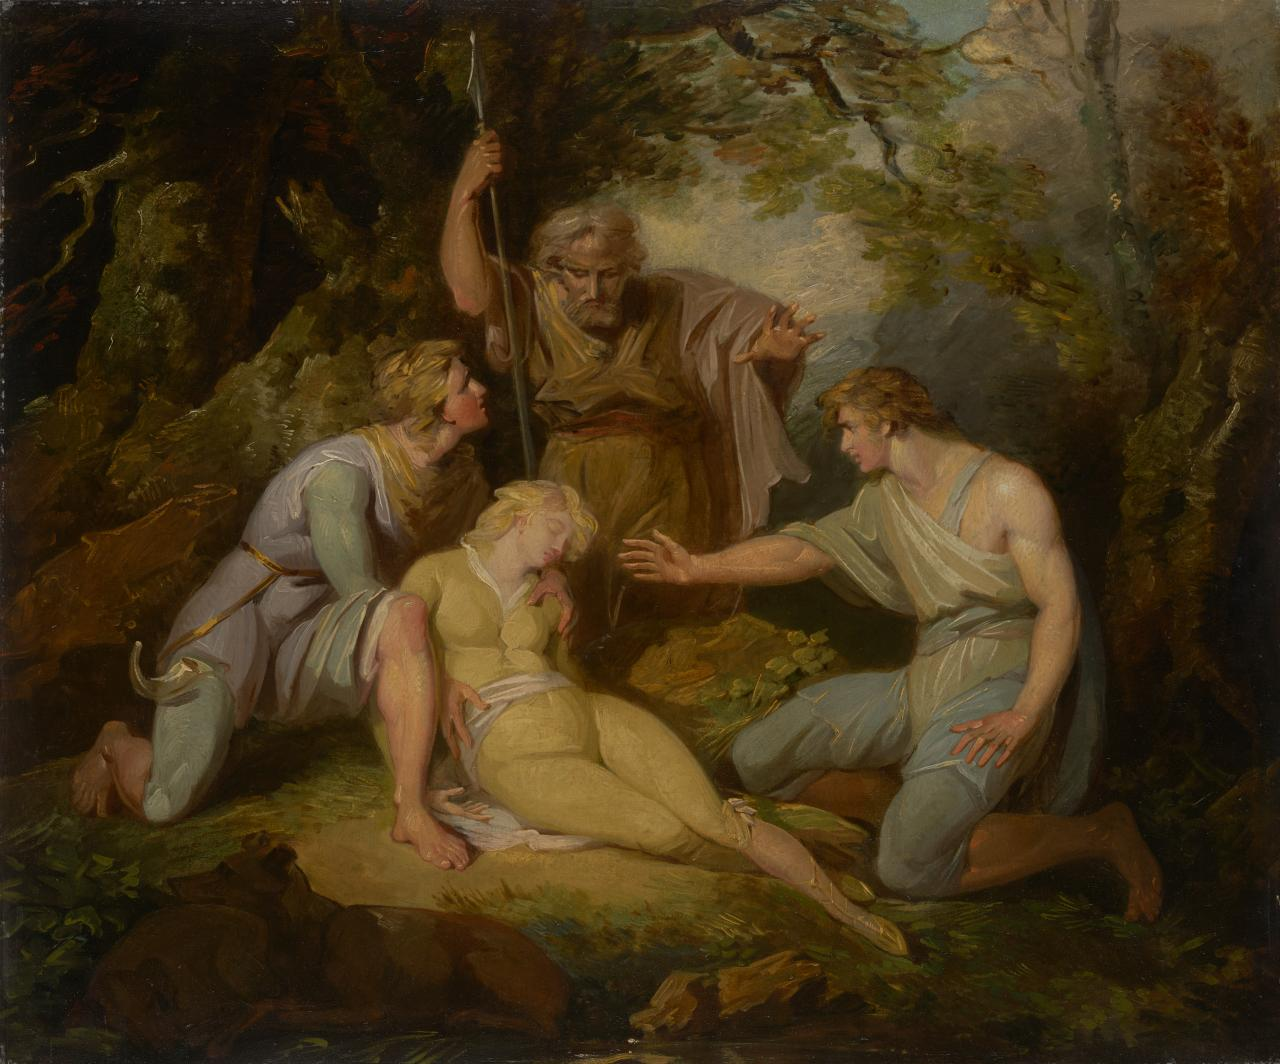 Imogen found by Arviragus, Belarius and Guiderus in the forest